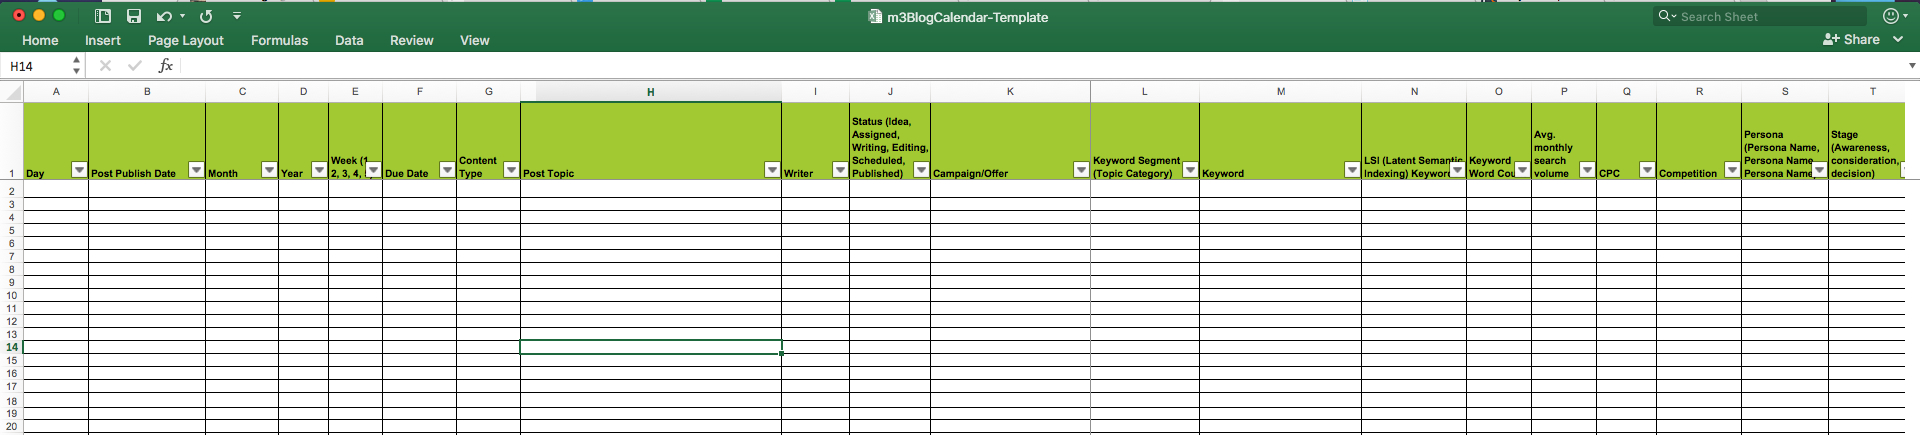 How To Make A Spreadsheet Look Good regarding Editorial Calendar Templates For Content Marketing: The Ultimate List